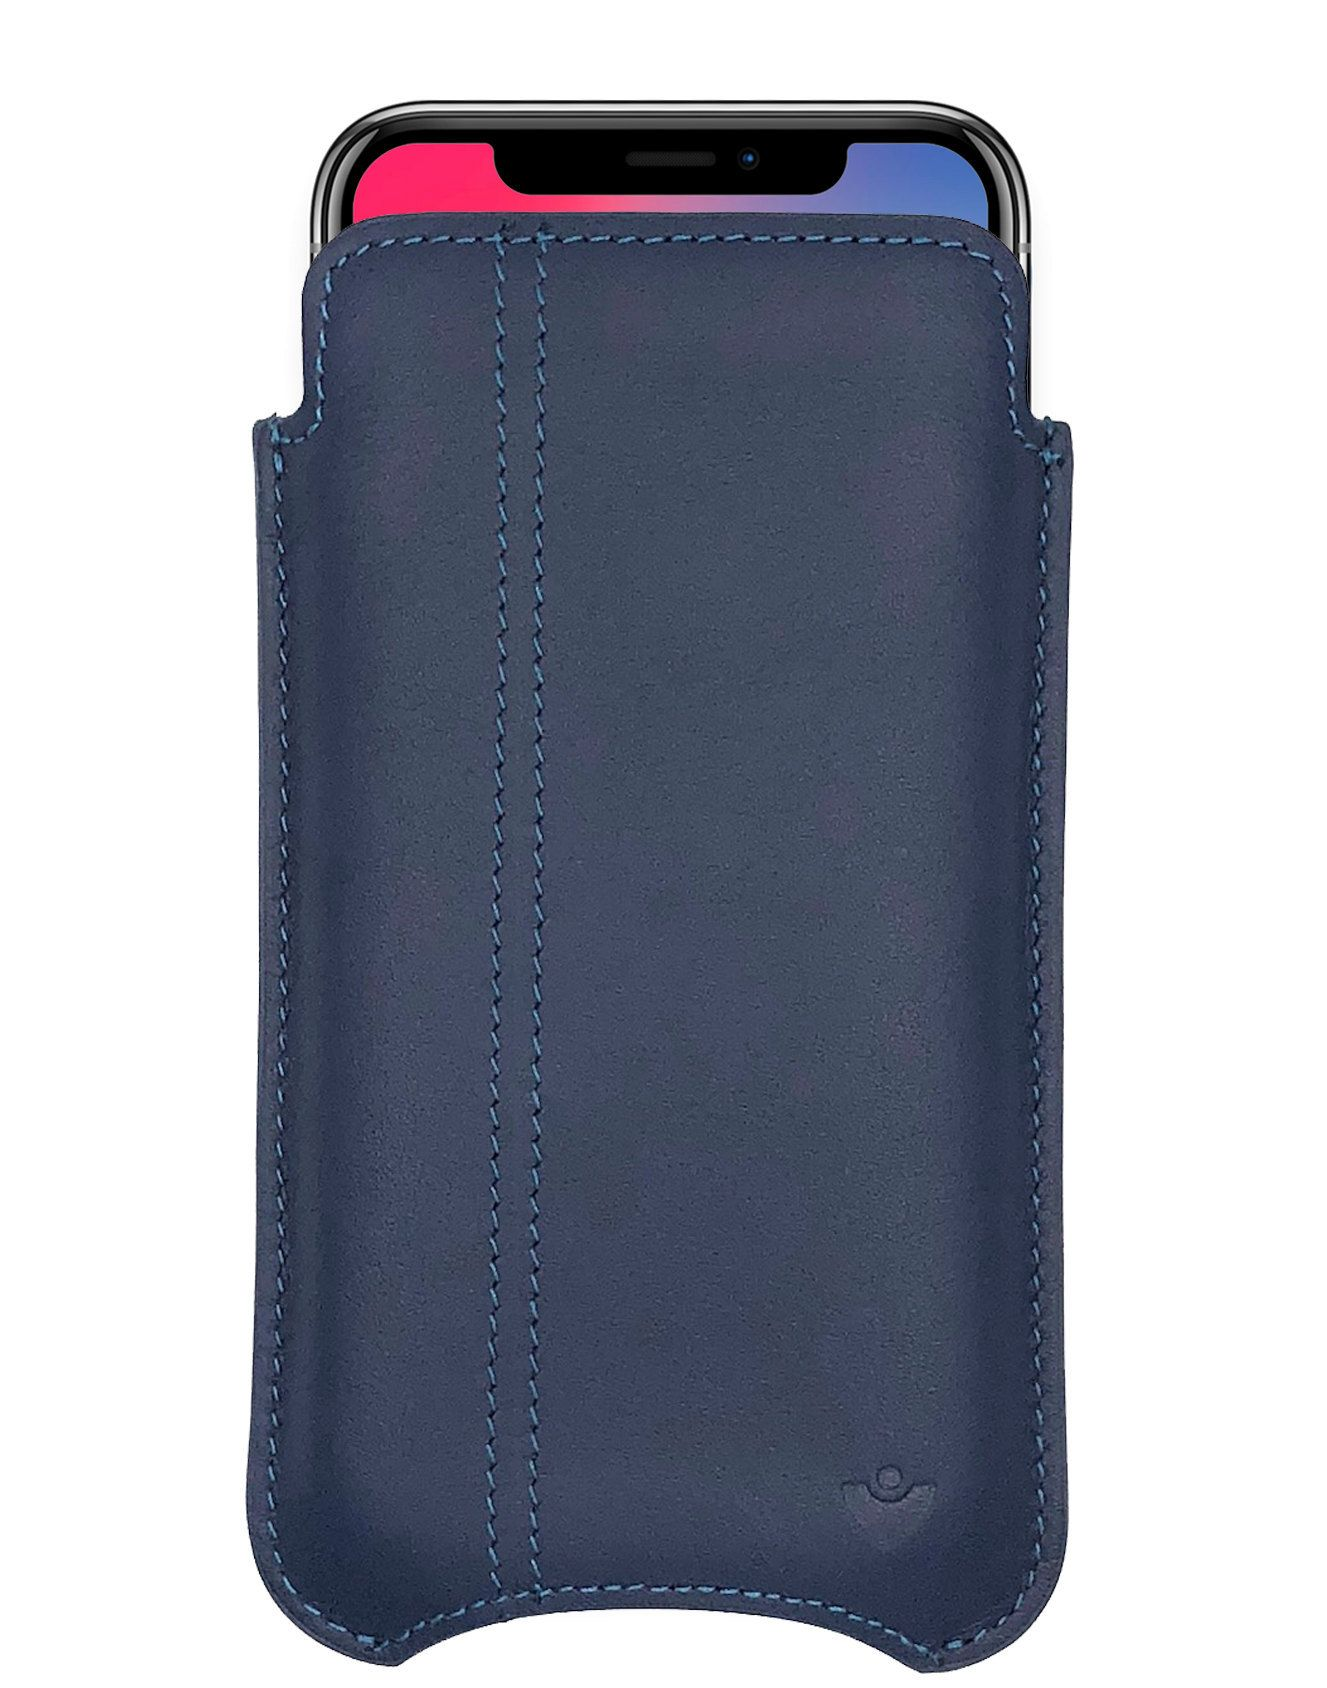 quality design 29d6b 945a7 iPhone X/Xs Case in Blue Genuine Napa Leather | Screen Cleaning ...